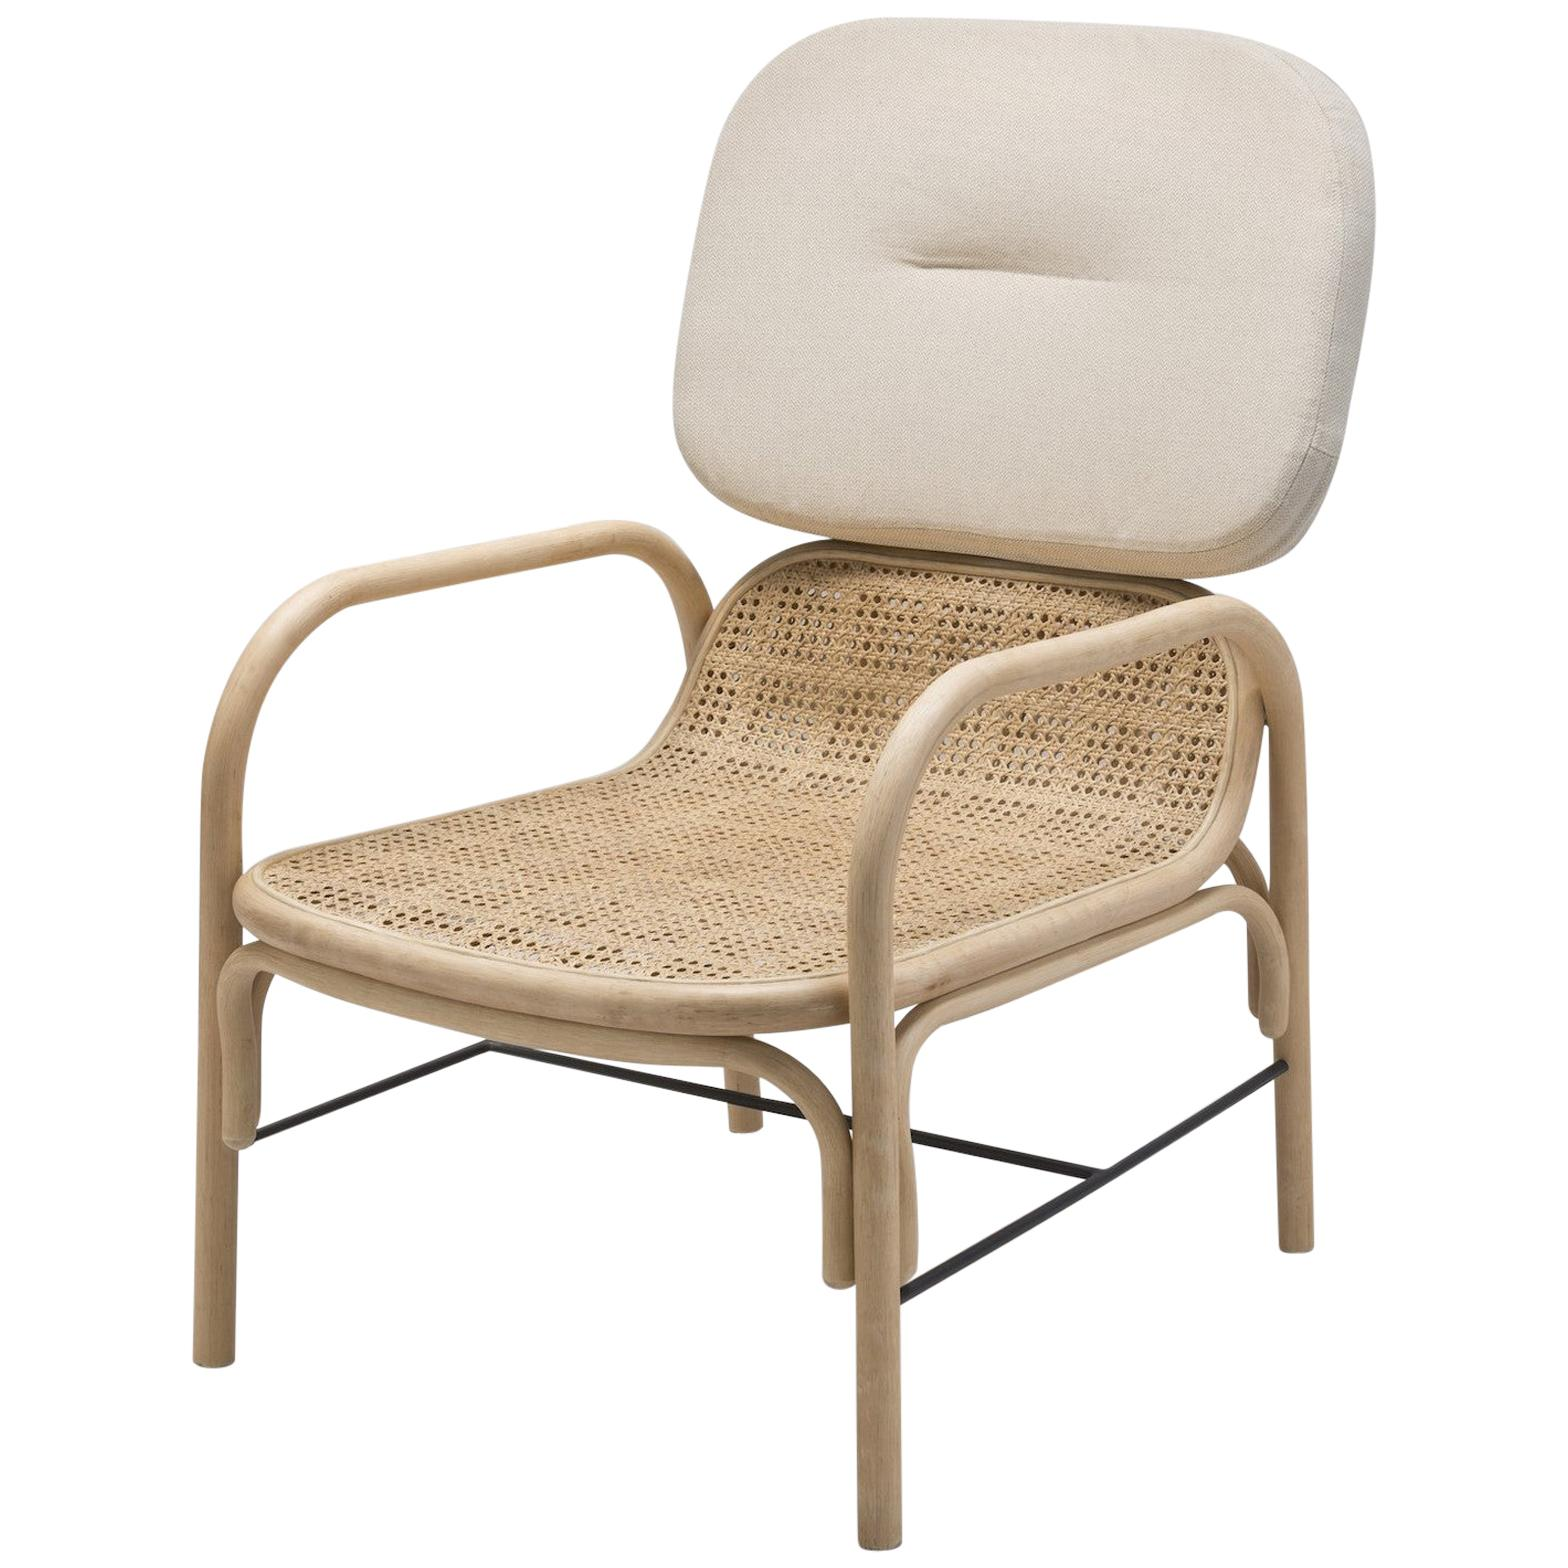 French Design Handcrafted Rattan and Wicker Cane Lounger Armchair